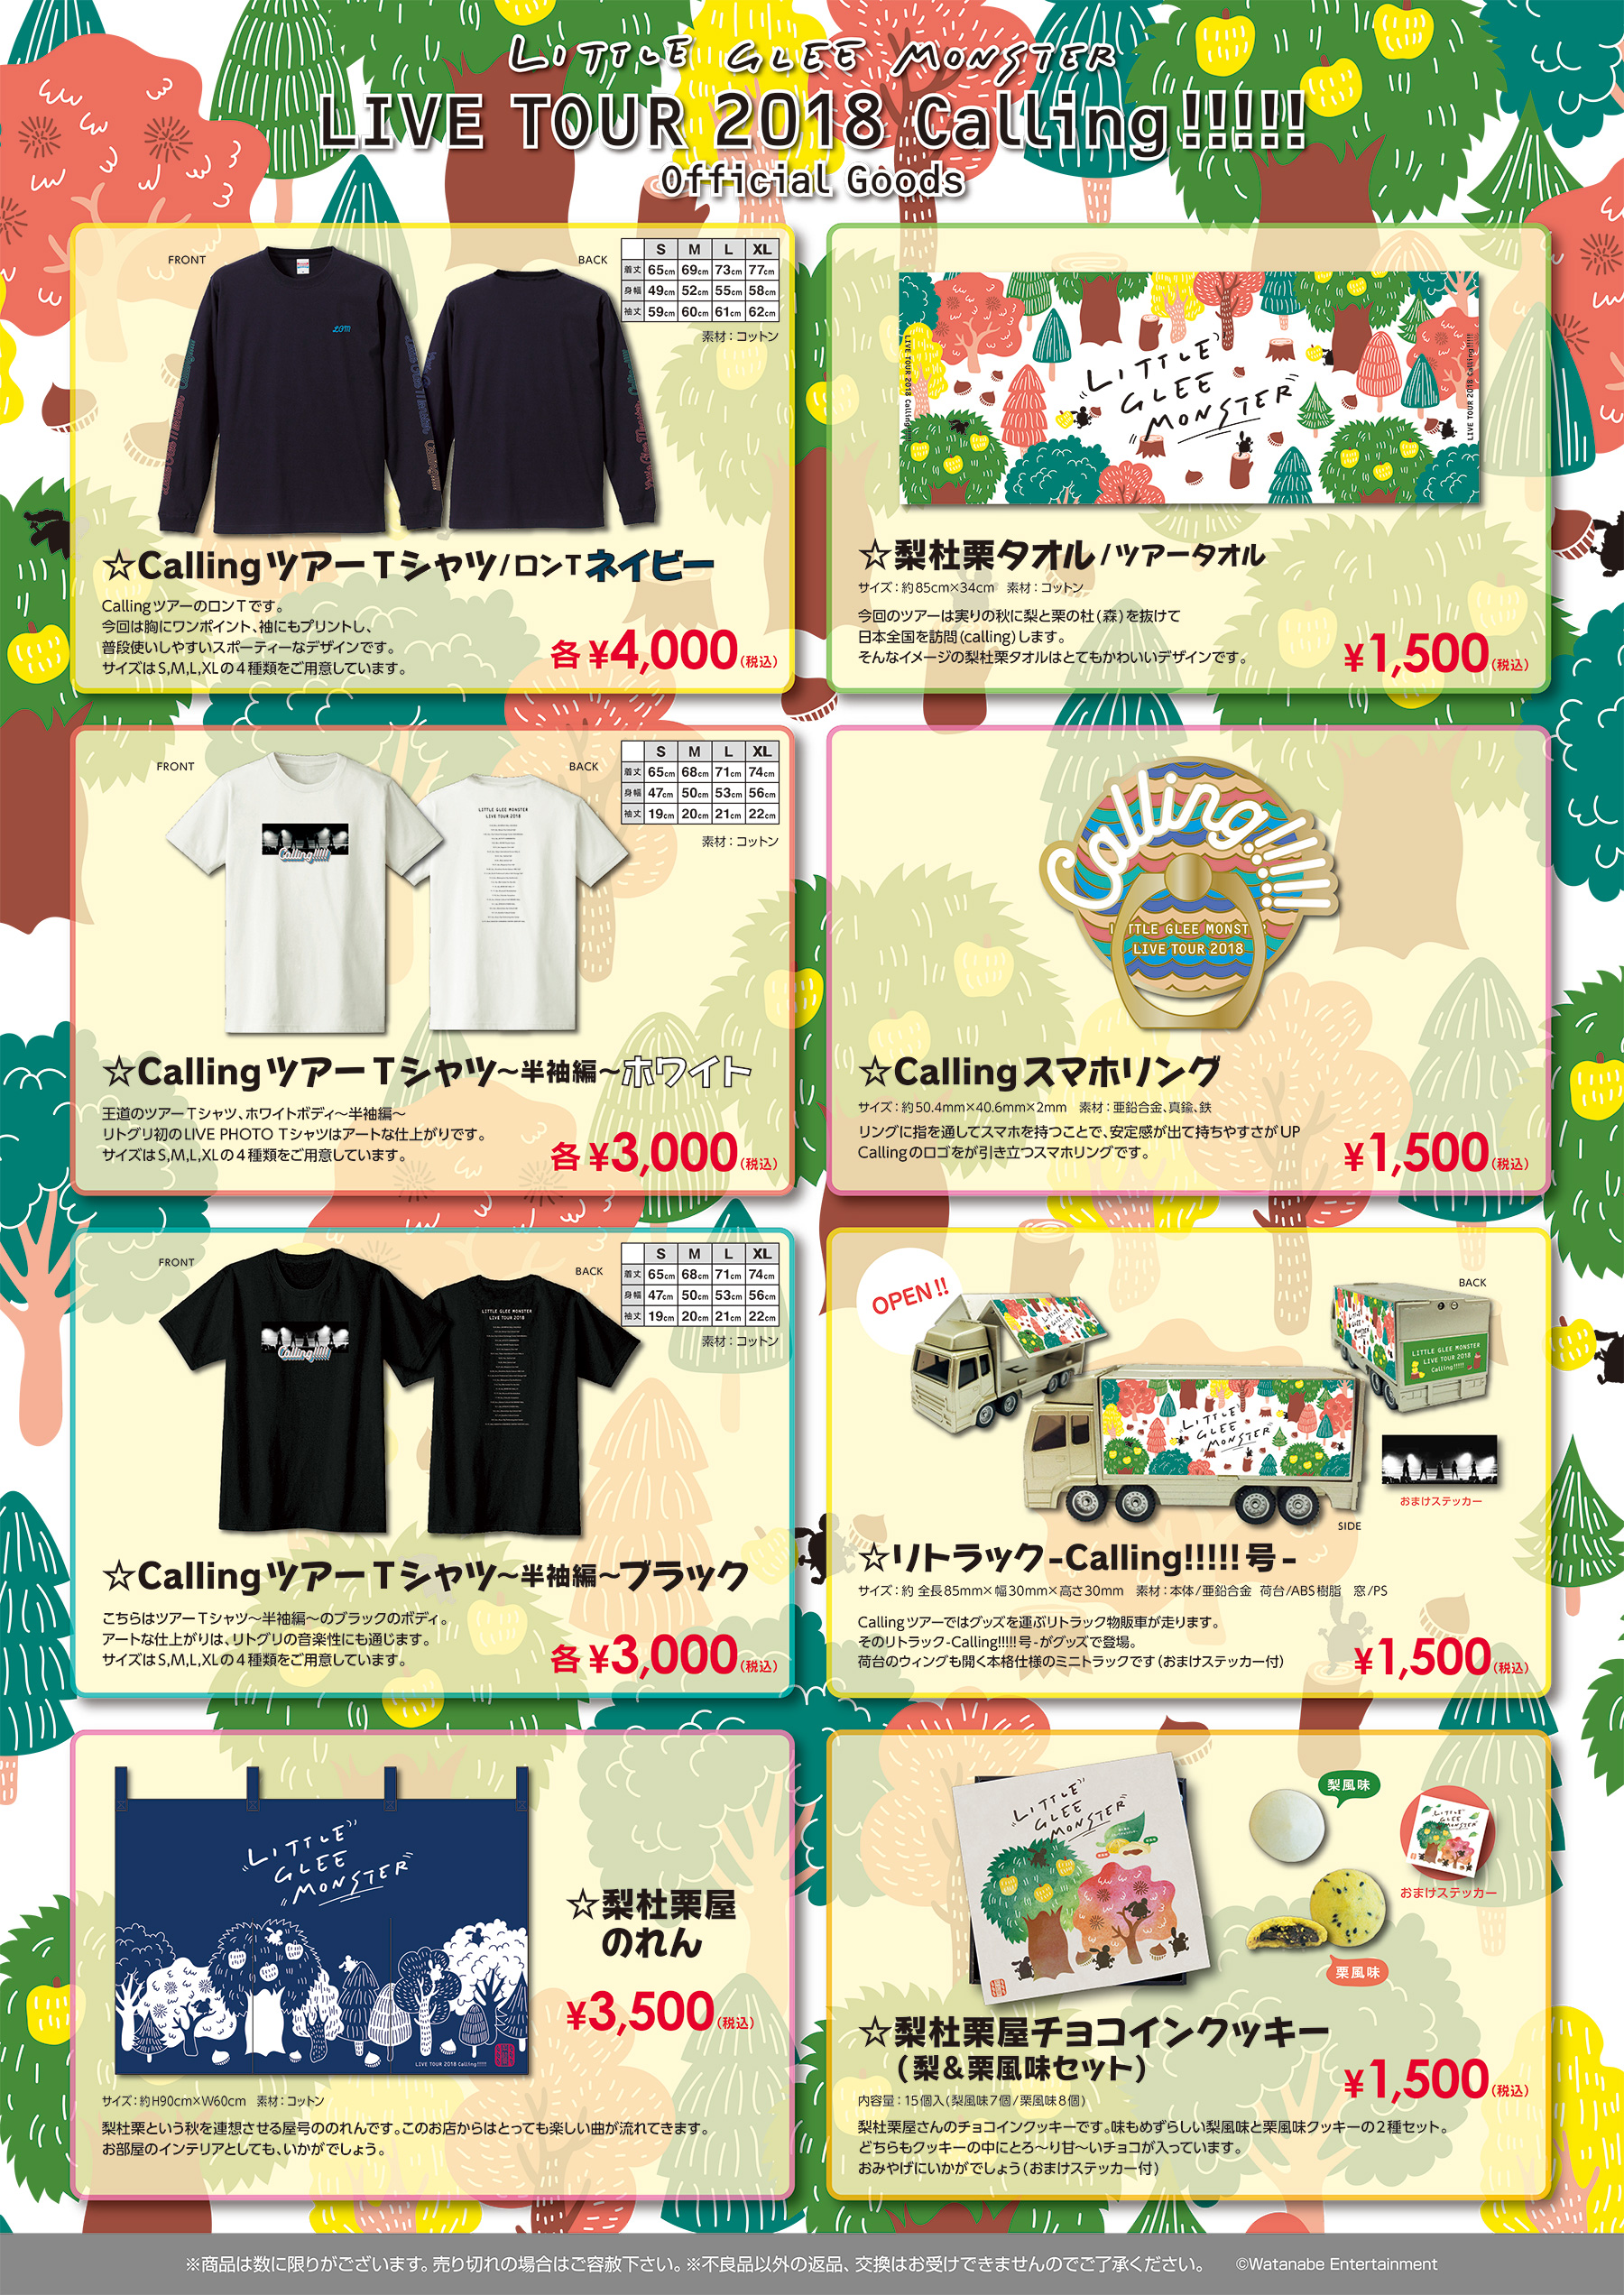 goods little glee monster live tour 2018 calling special site